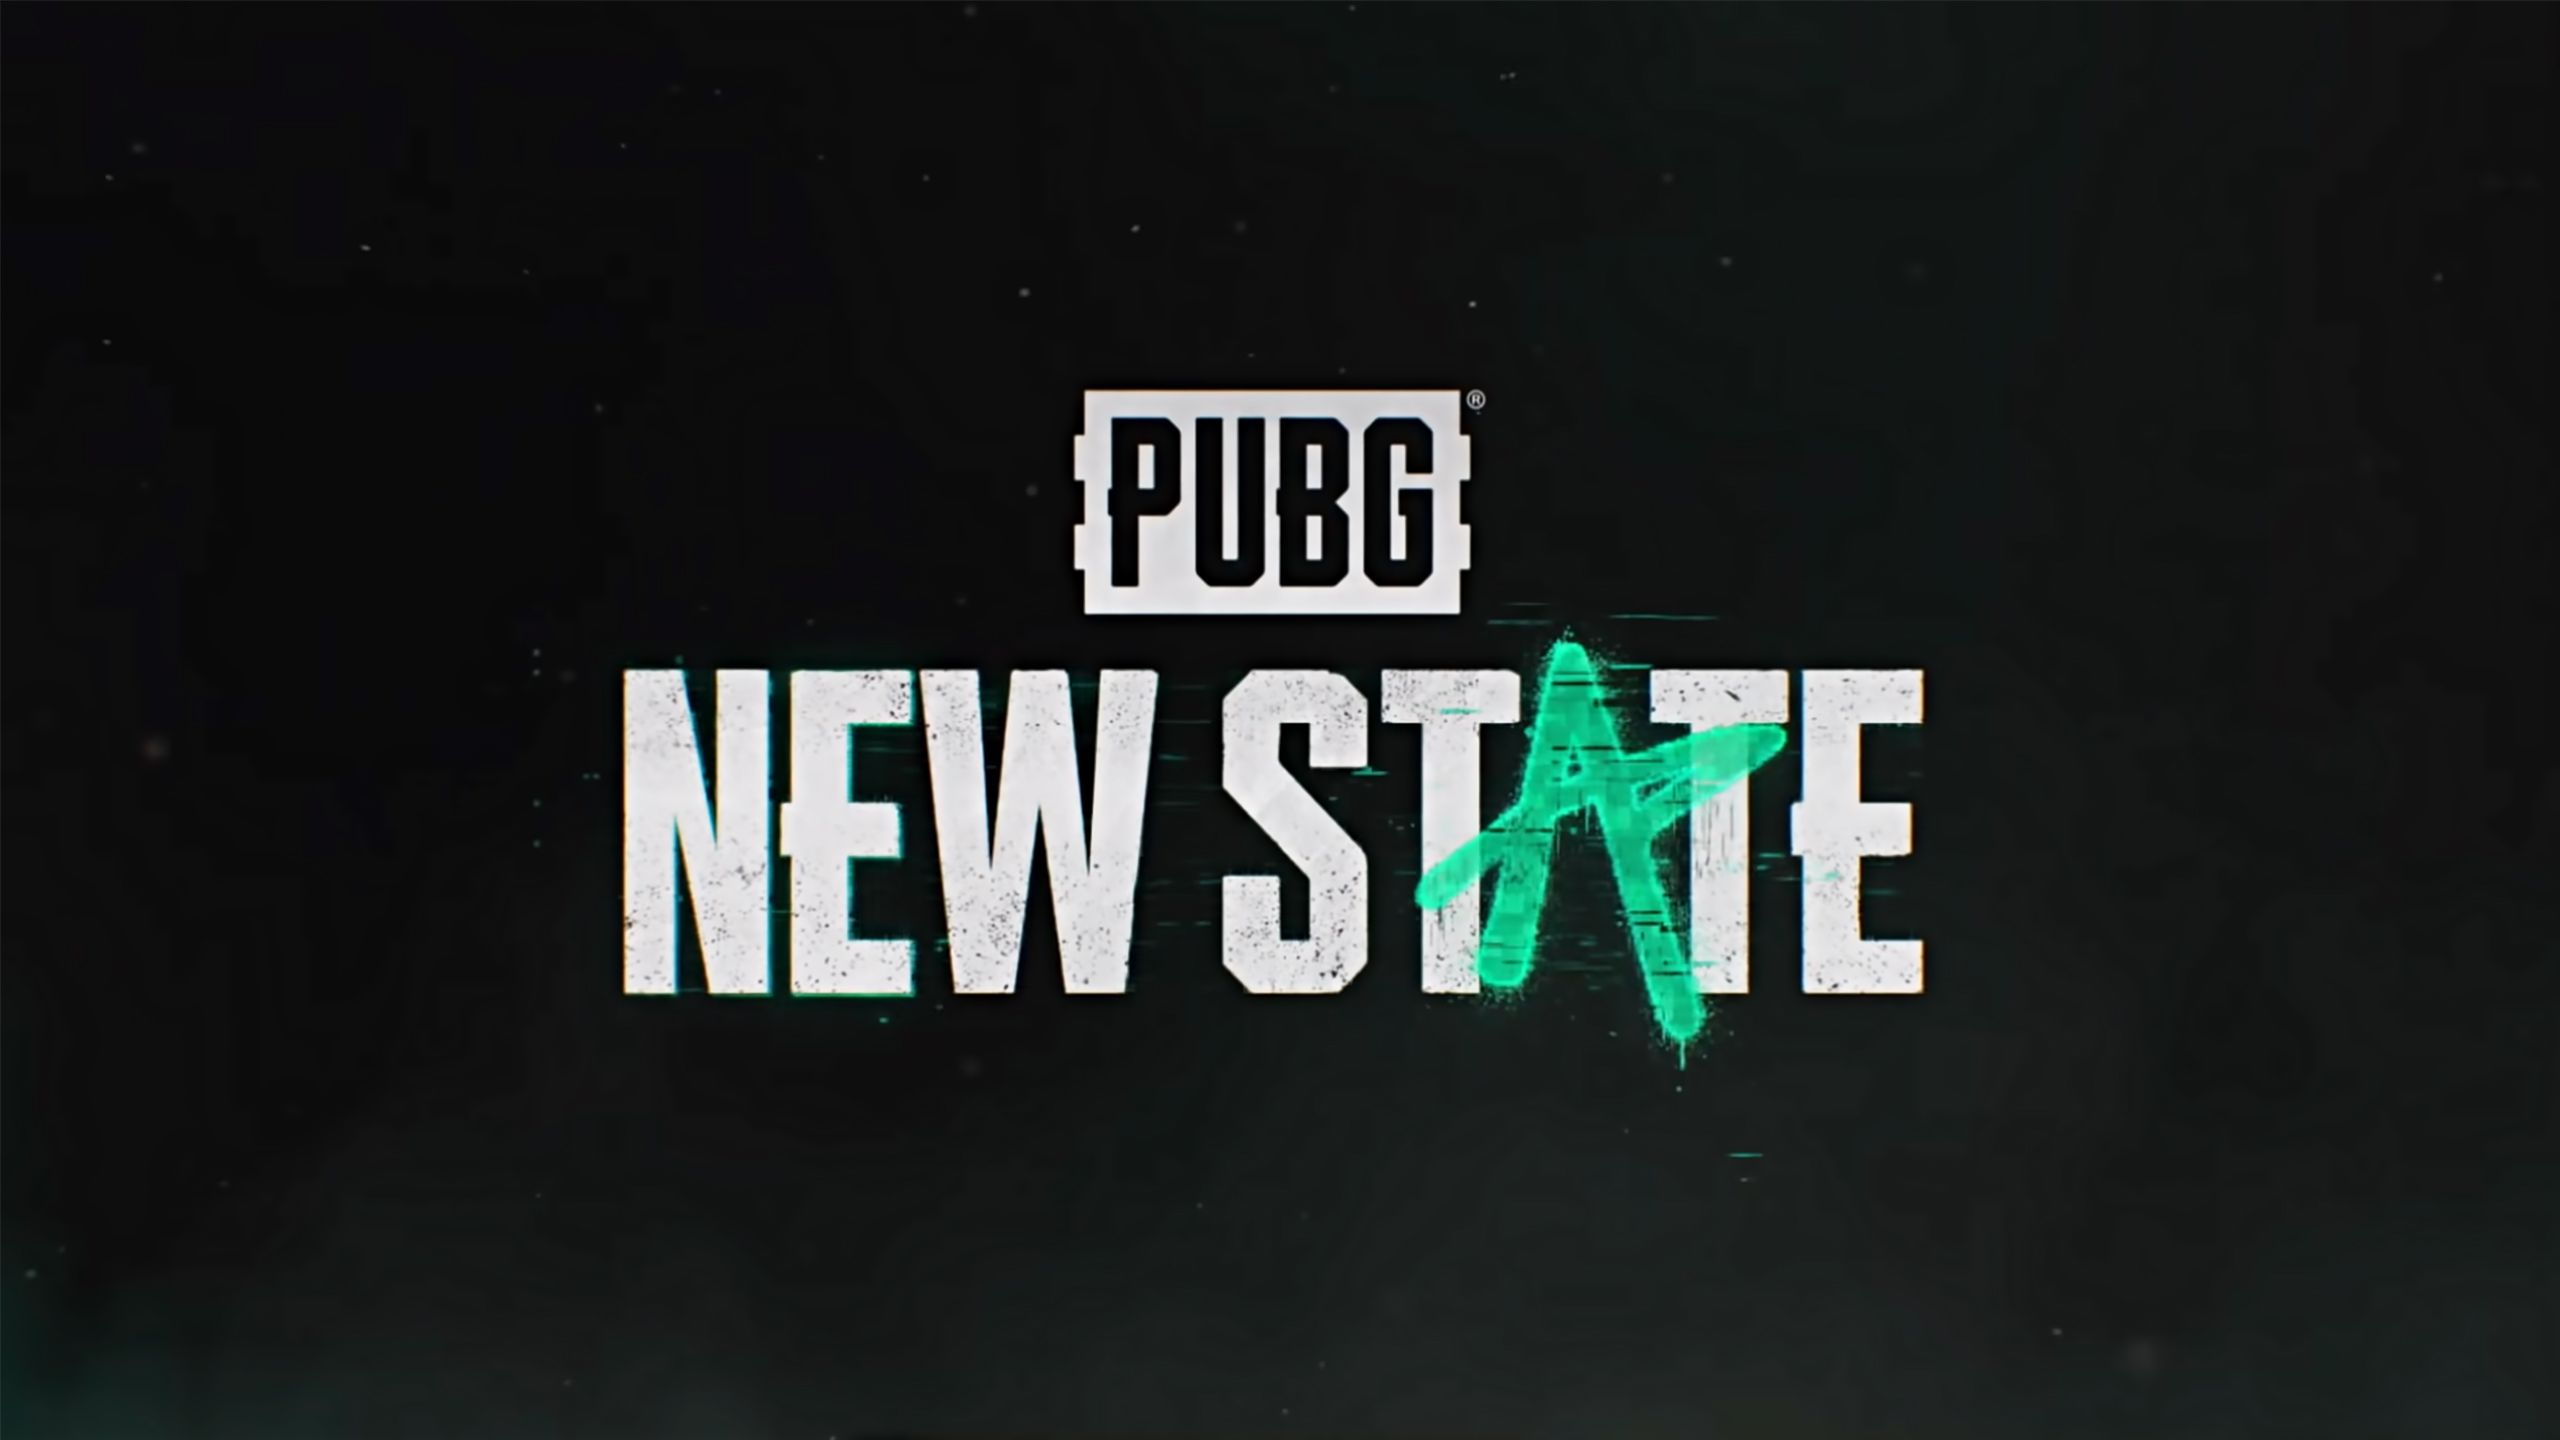 PUBG New State Wallpapers   Top PUBG New State Backgrounds 2560x1440